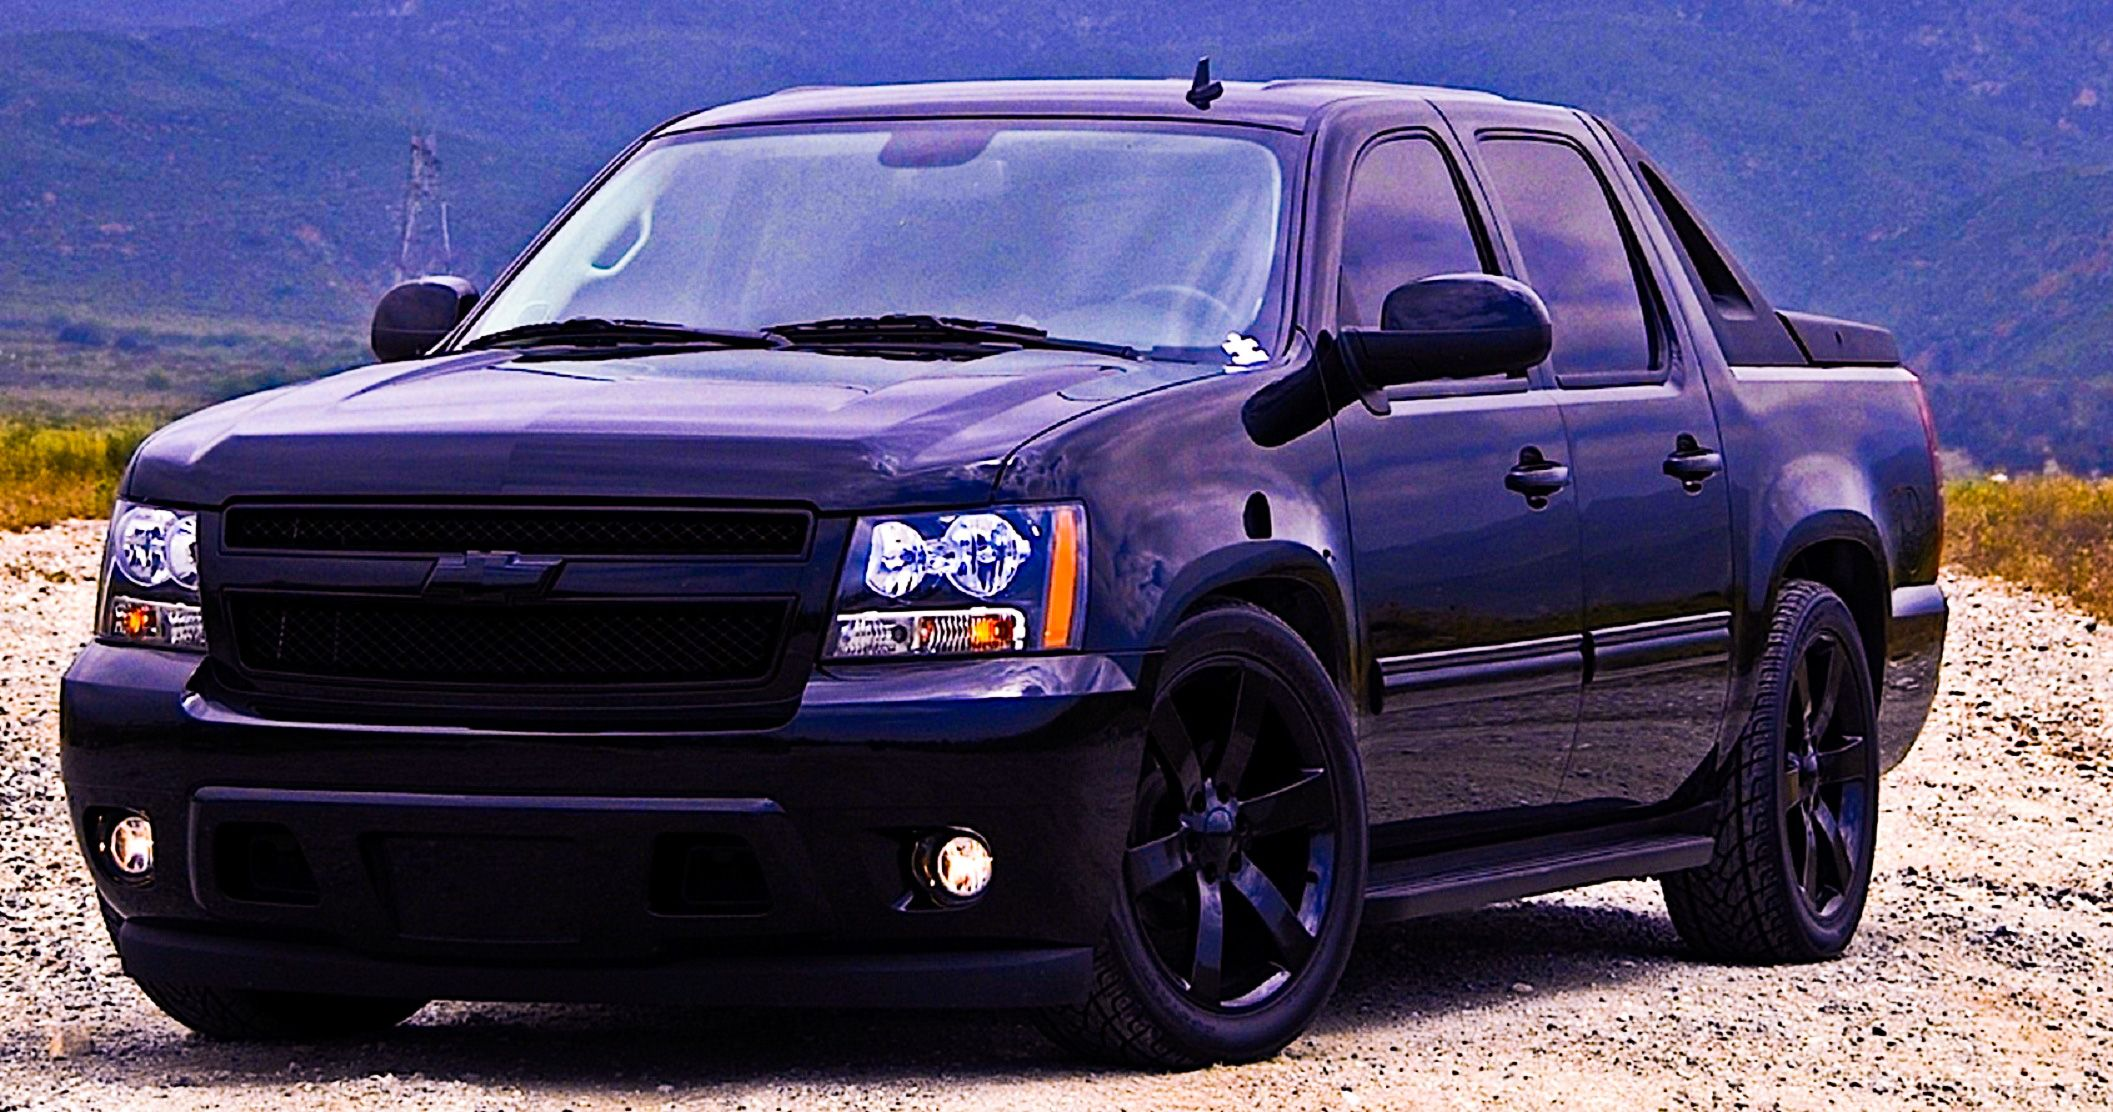 Customized chevrolet avalanche back on black baby